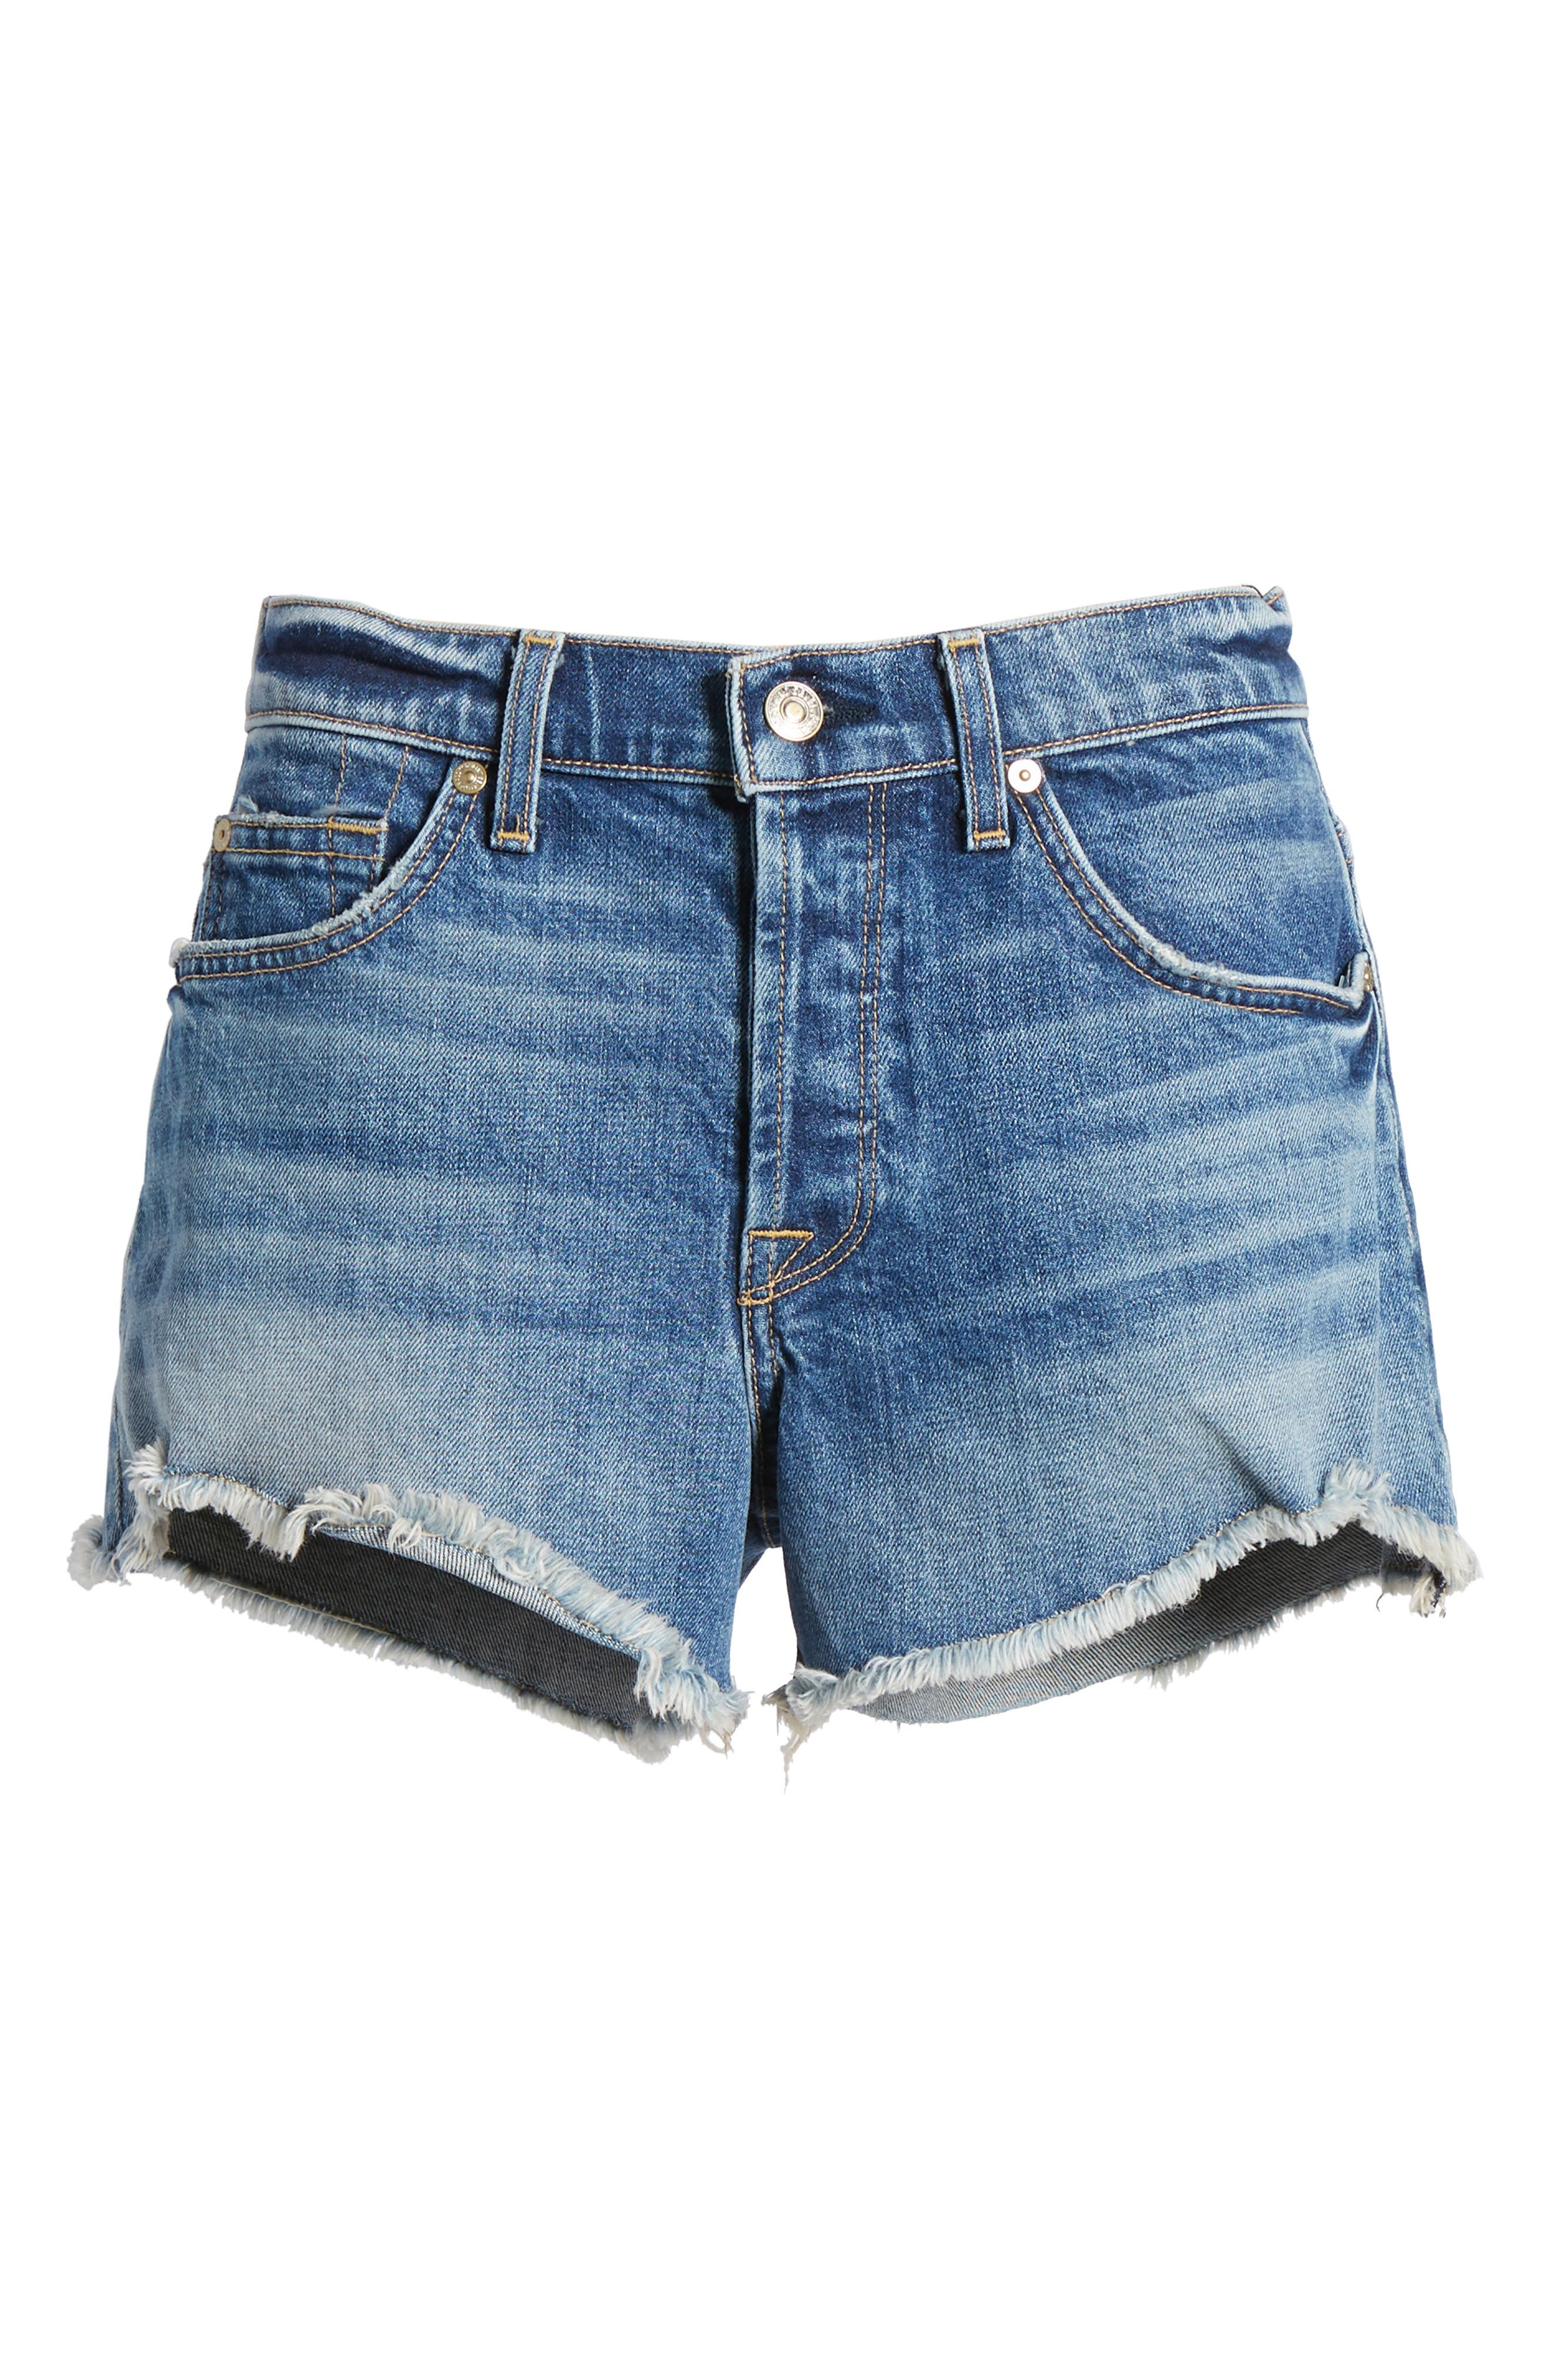 High Waist Cutoff Wave Hem Denim Shorts,                             Alternate thumbnail 7, color,                             Canyon Ranch